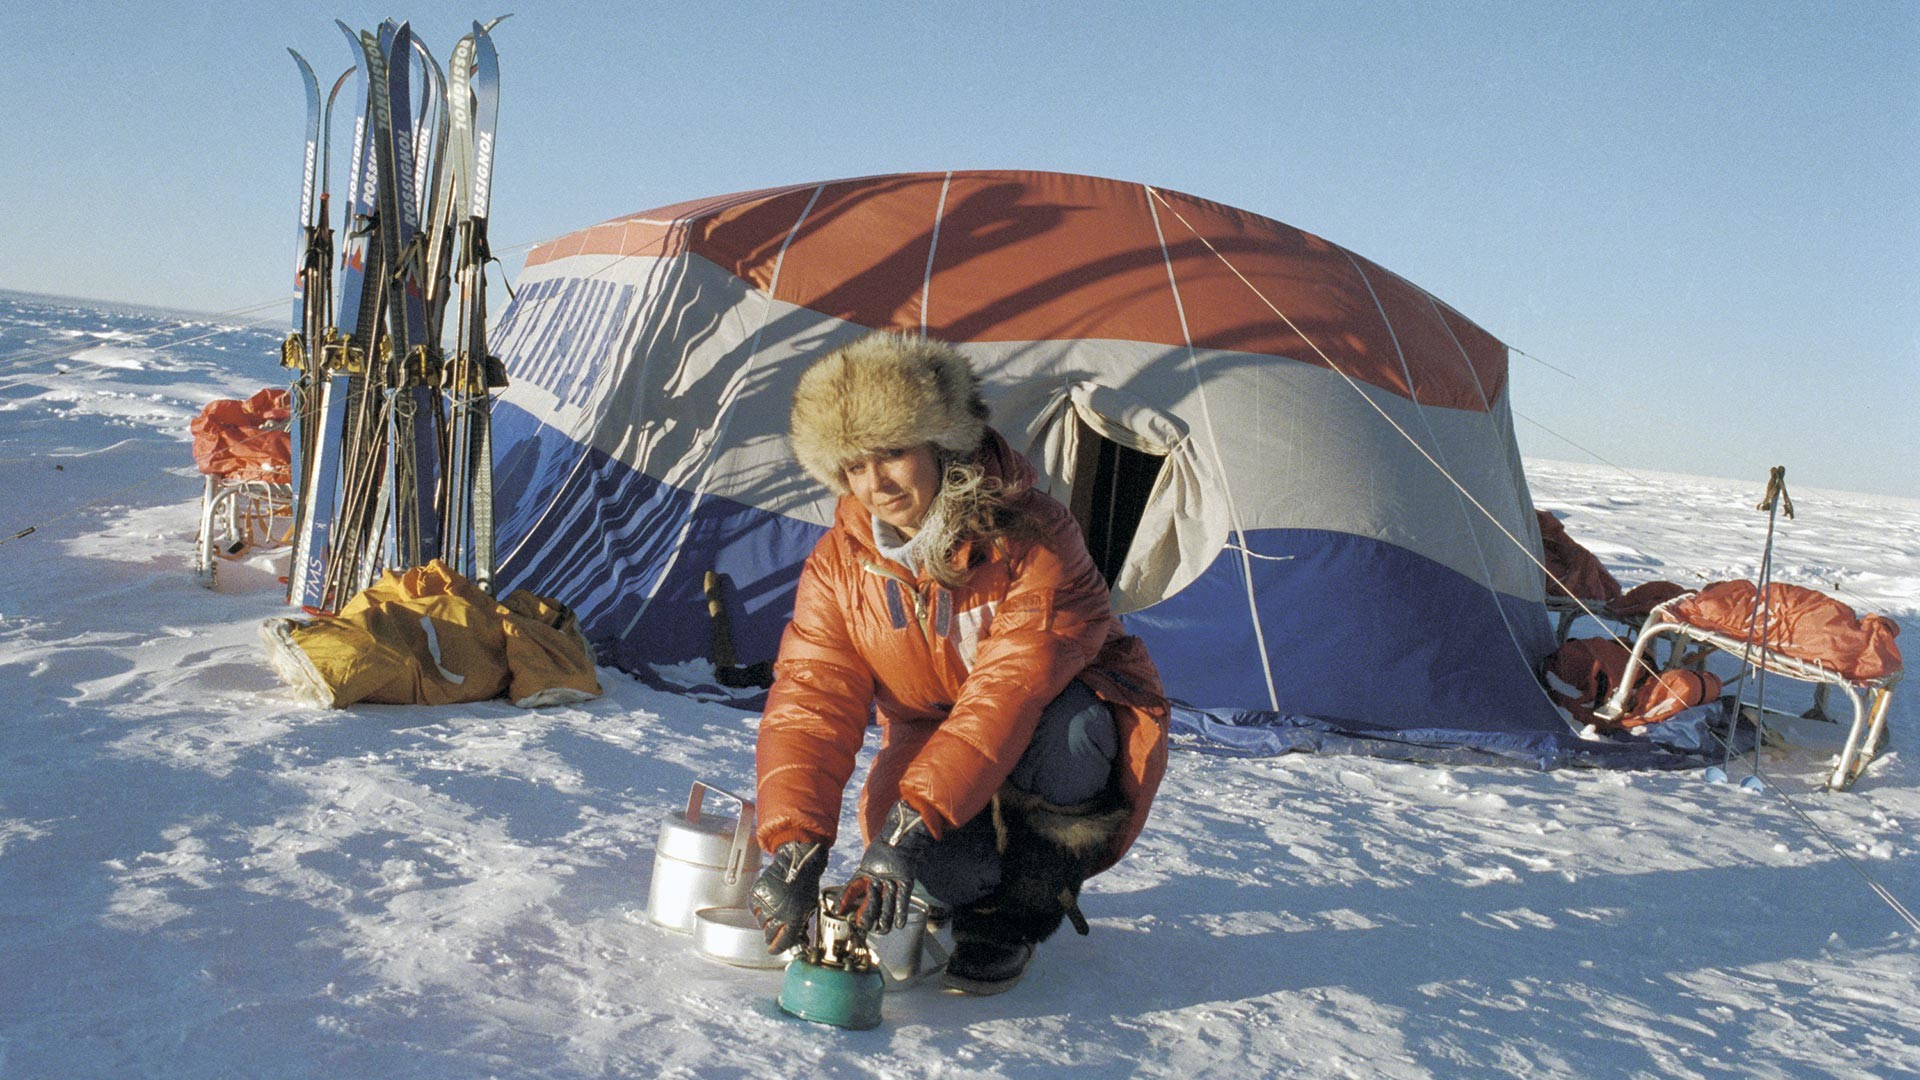 A member of Metelitsa during an expedition.